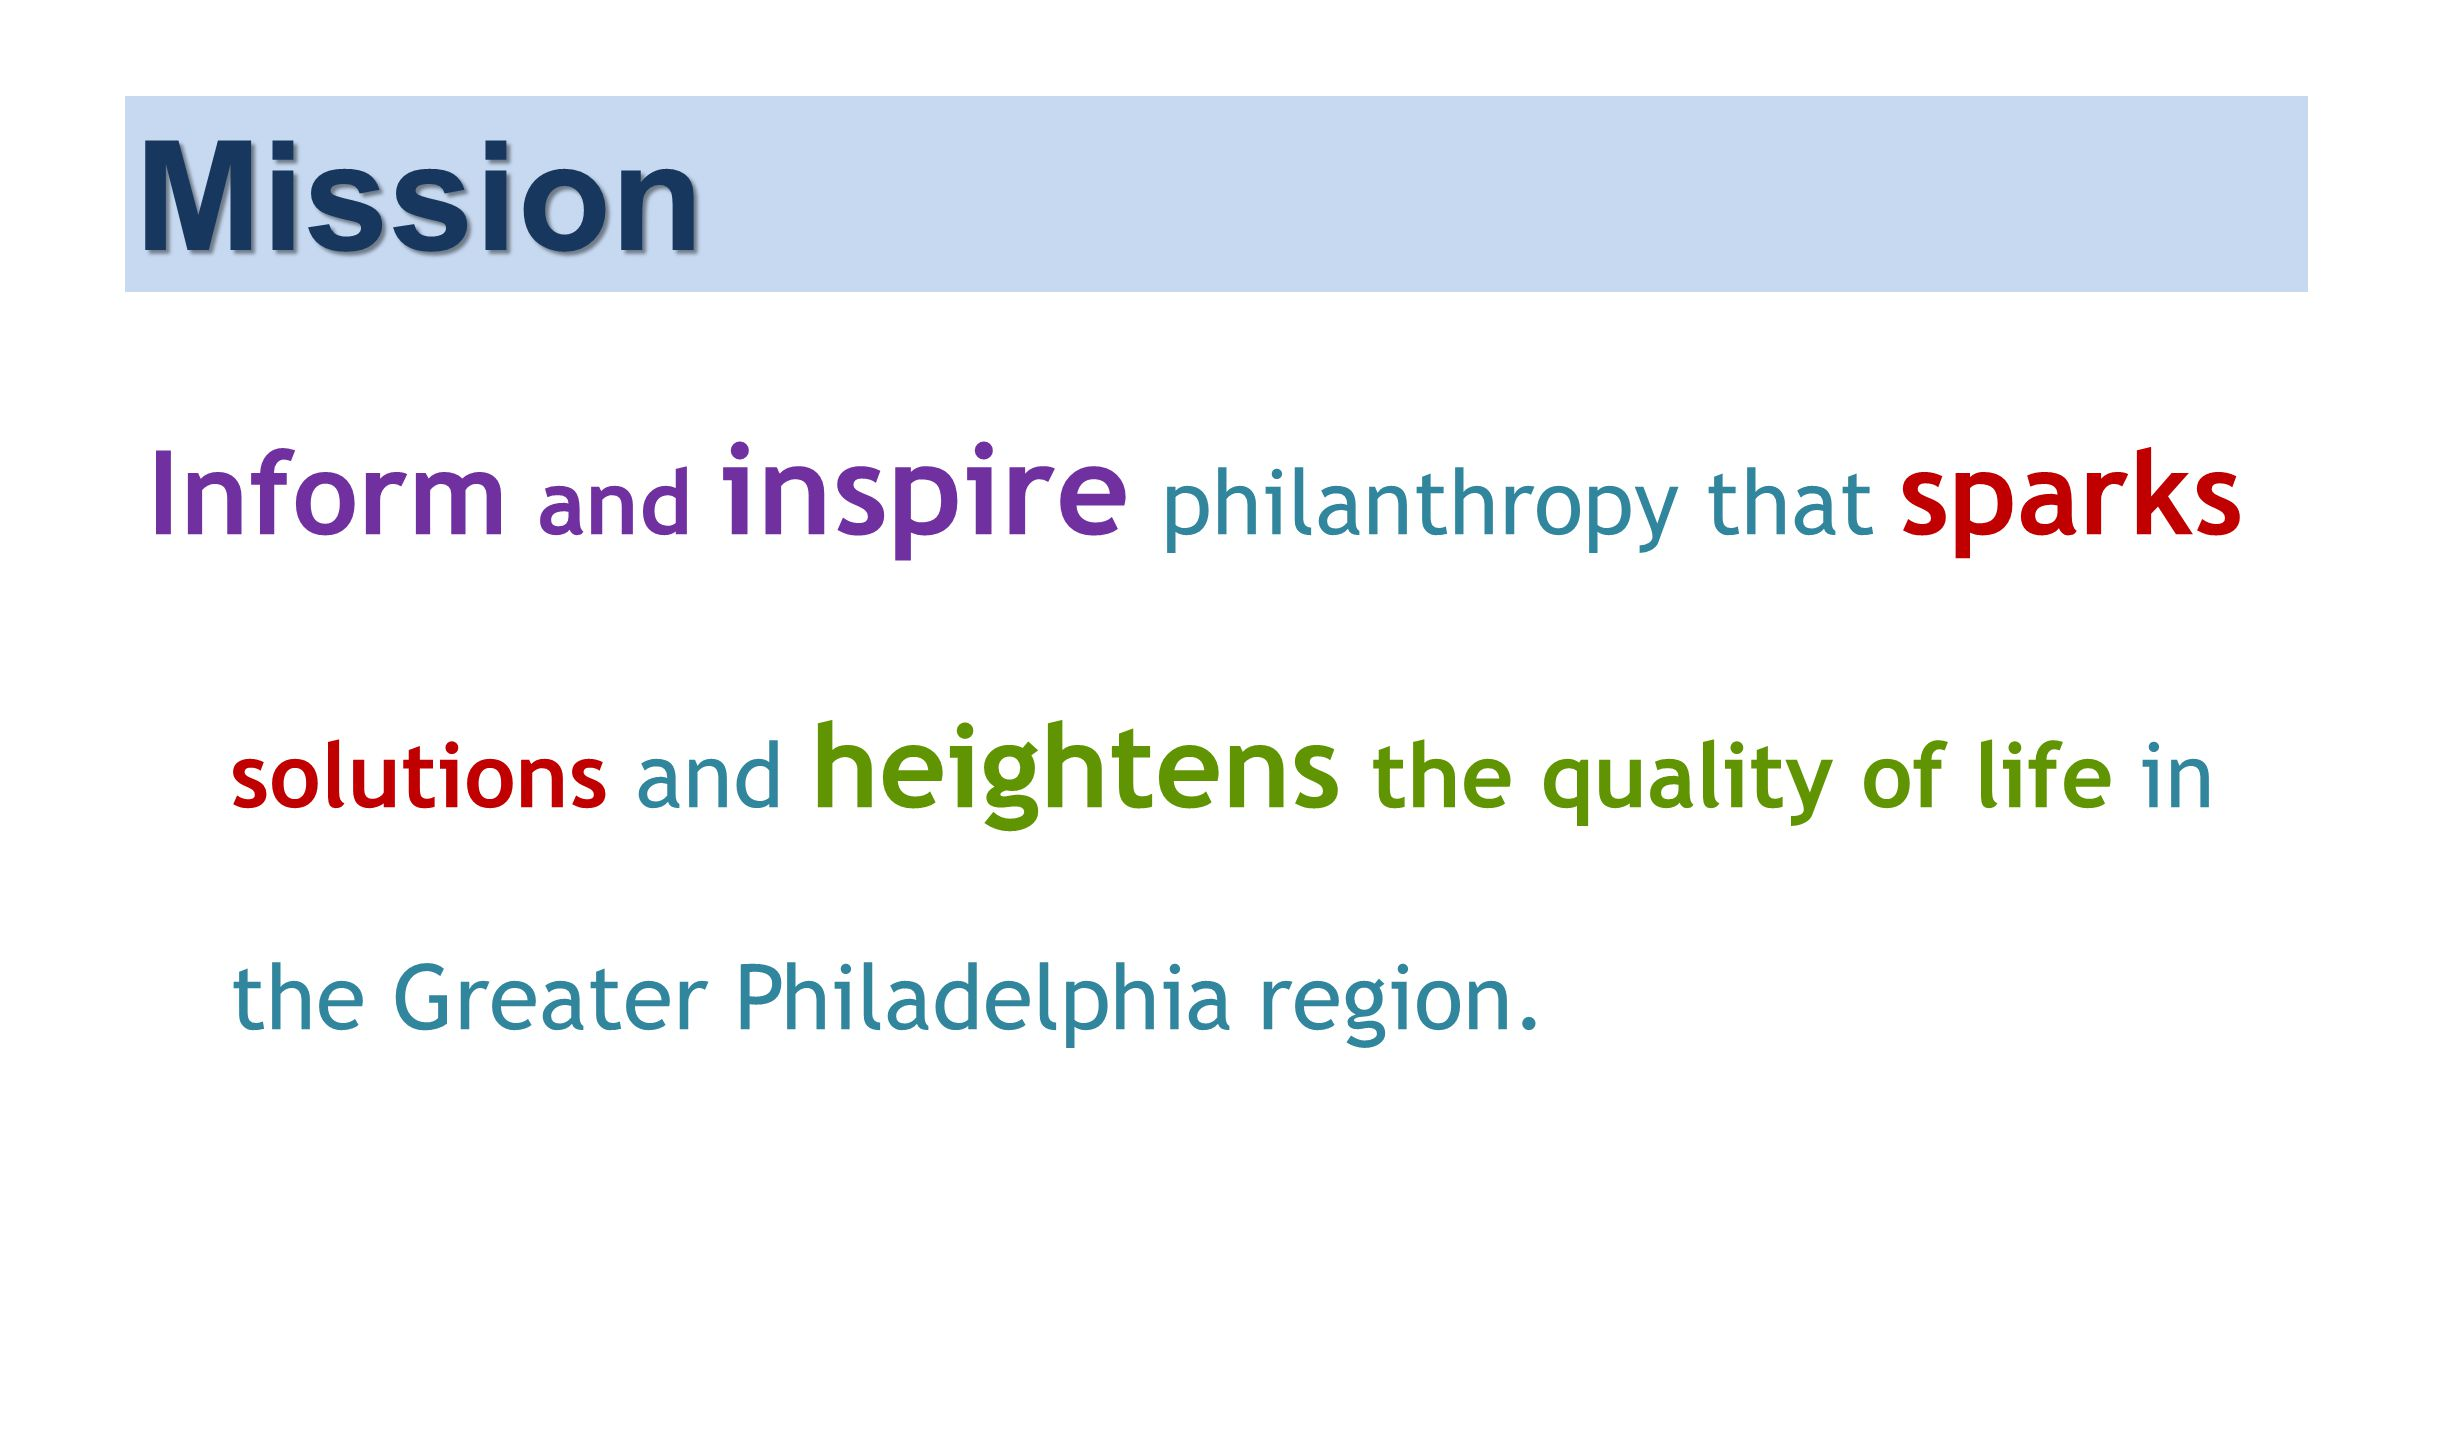 Inform and inspire philanthropy that sparks solutions and heightens the quality of life in the Greater Philadelphia region.